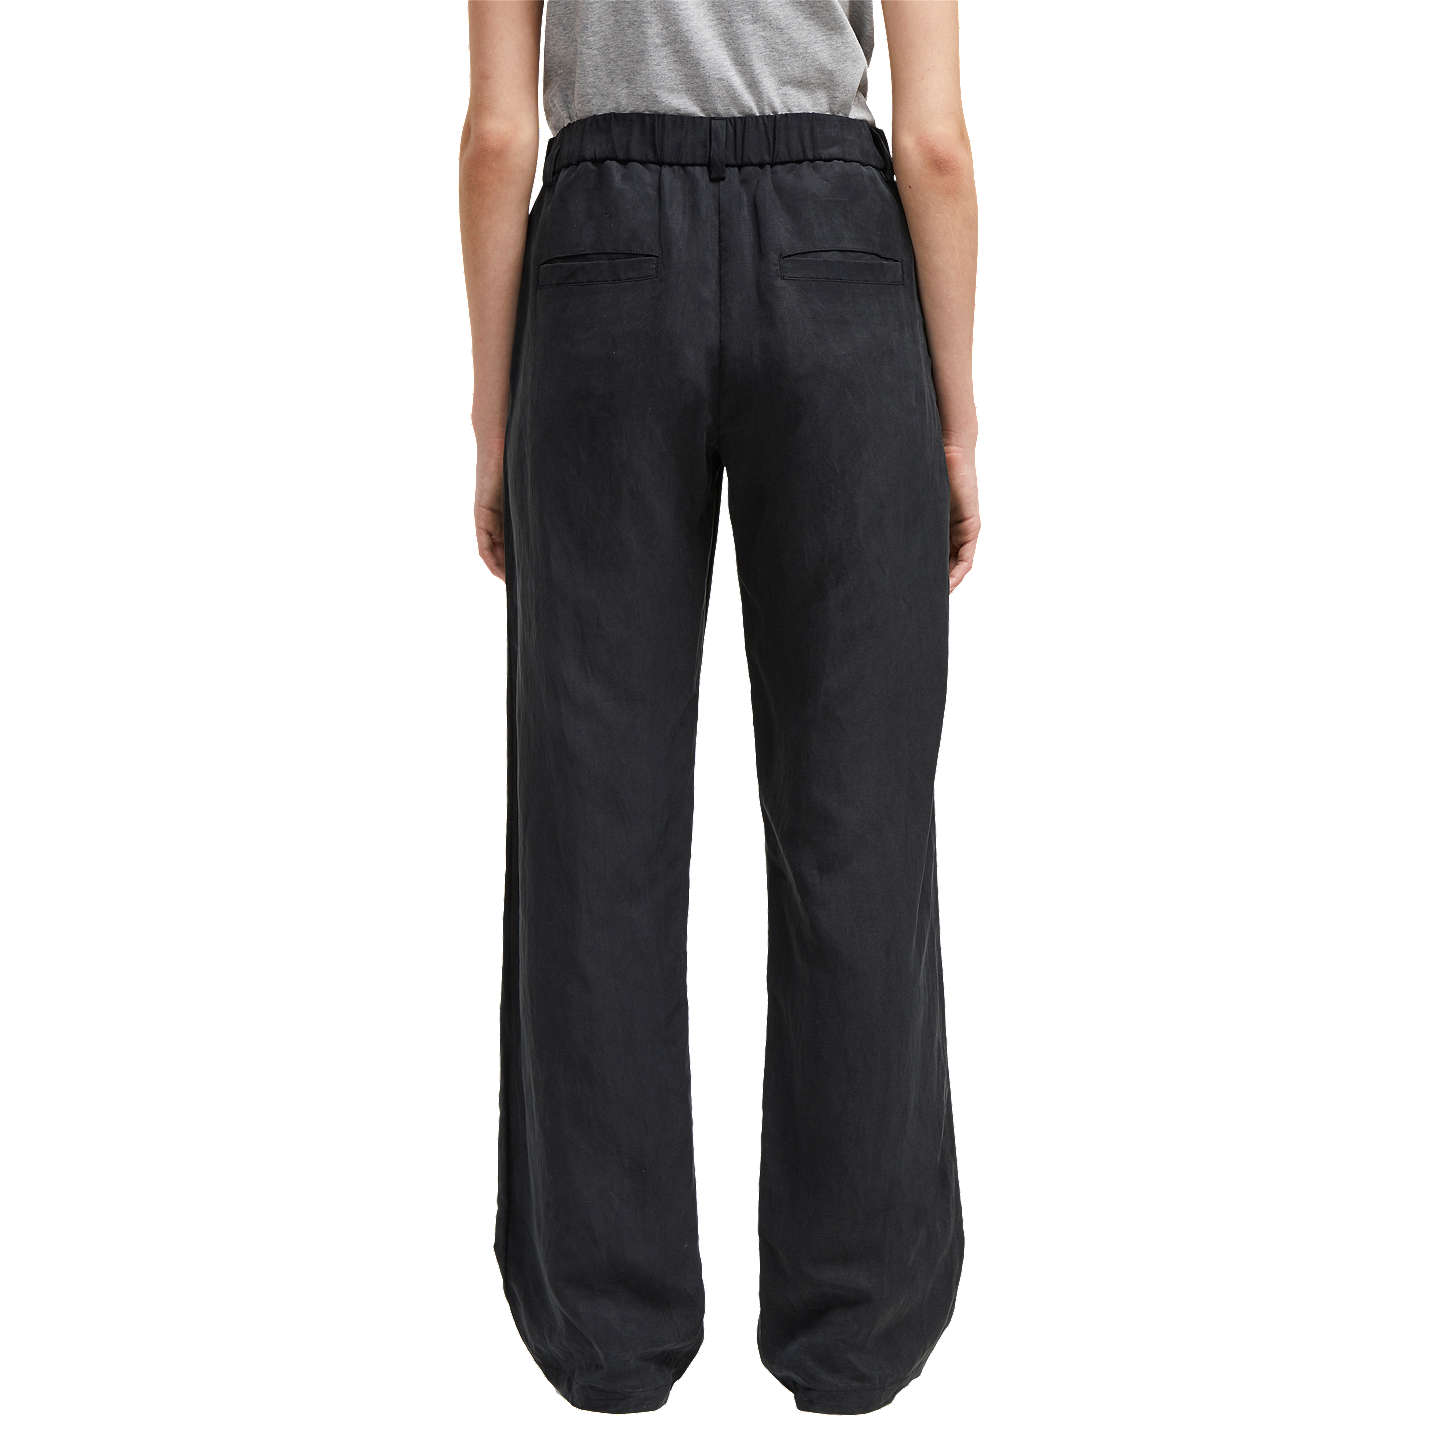 BuyFrench Connection Caspia Trousers, Black, 6 Online at johnlewis.com